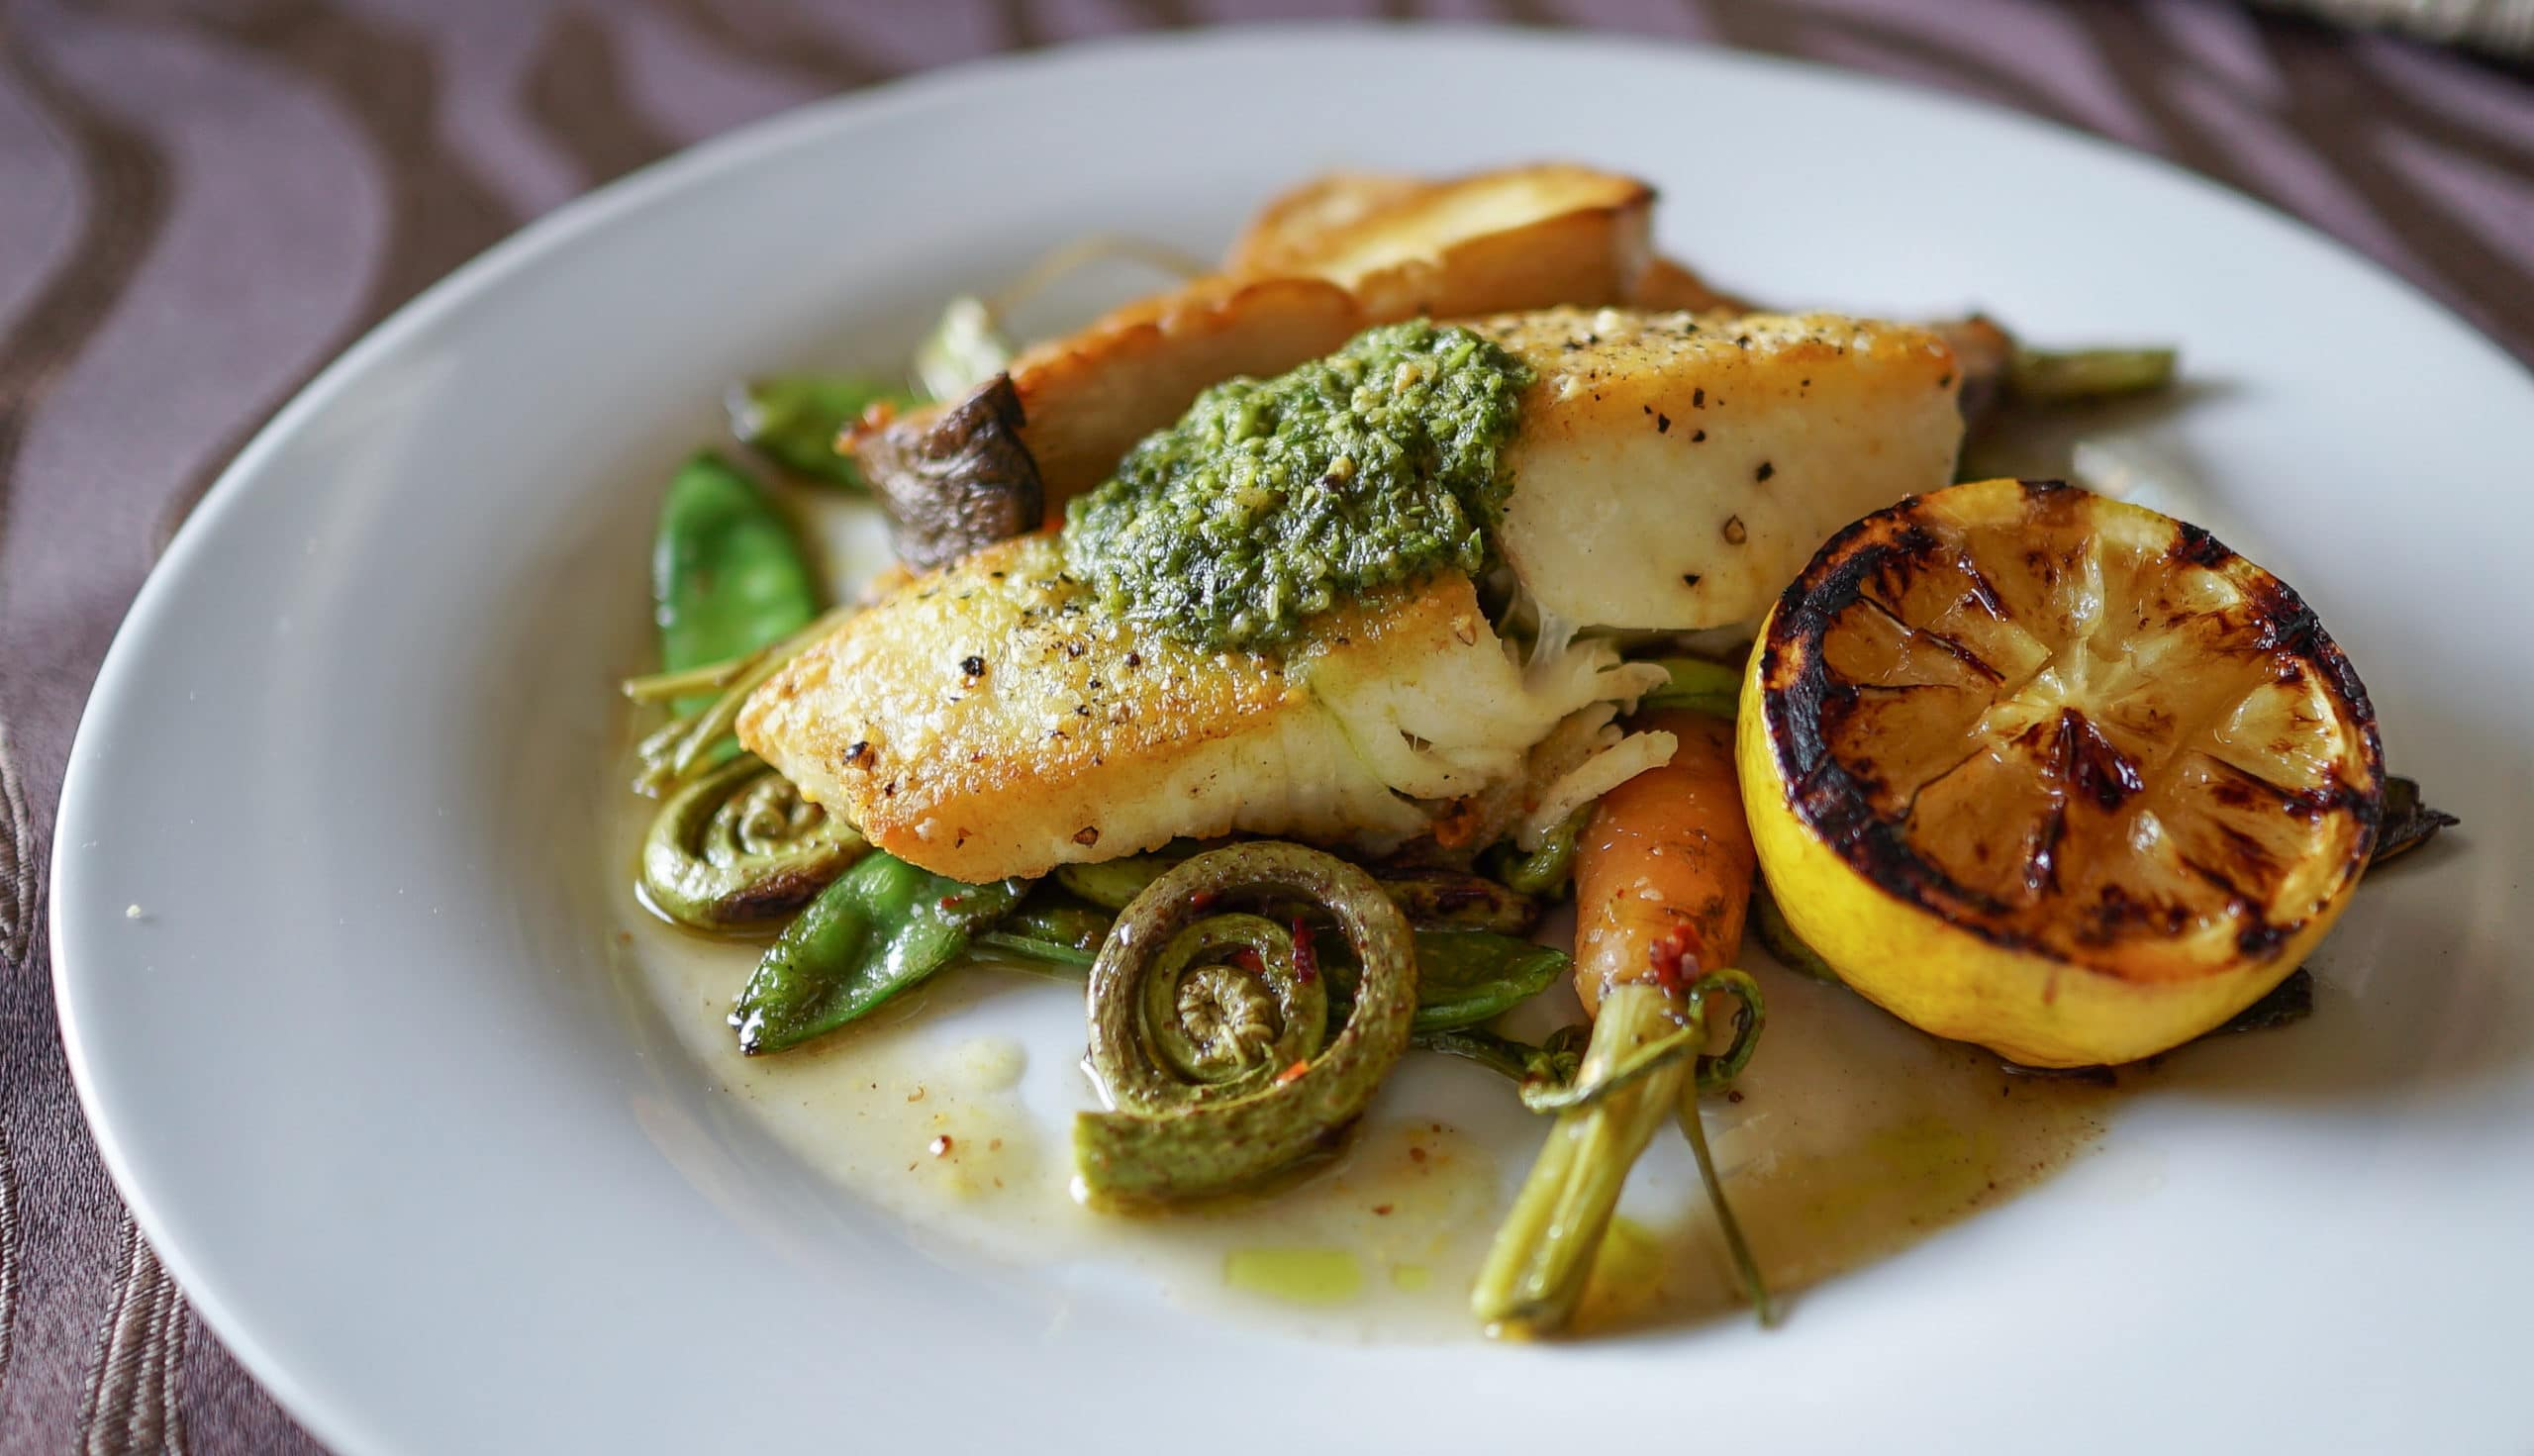 Delicious Farm to table cuisine at the Coho Restaurant, part of our San Juan Islands Bed and Breakfast